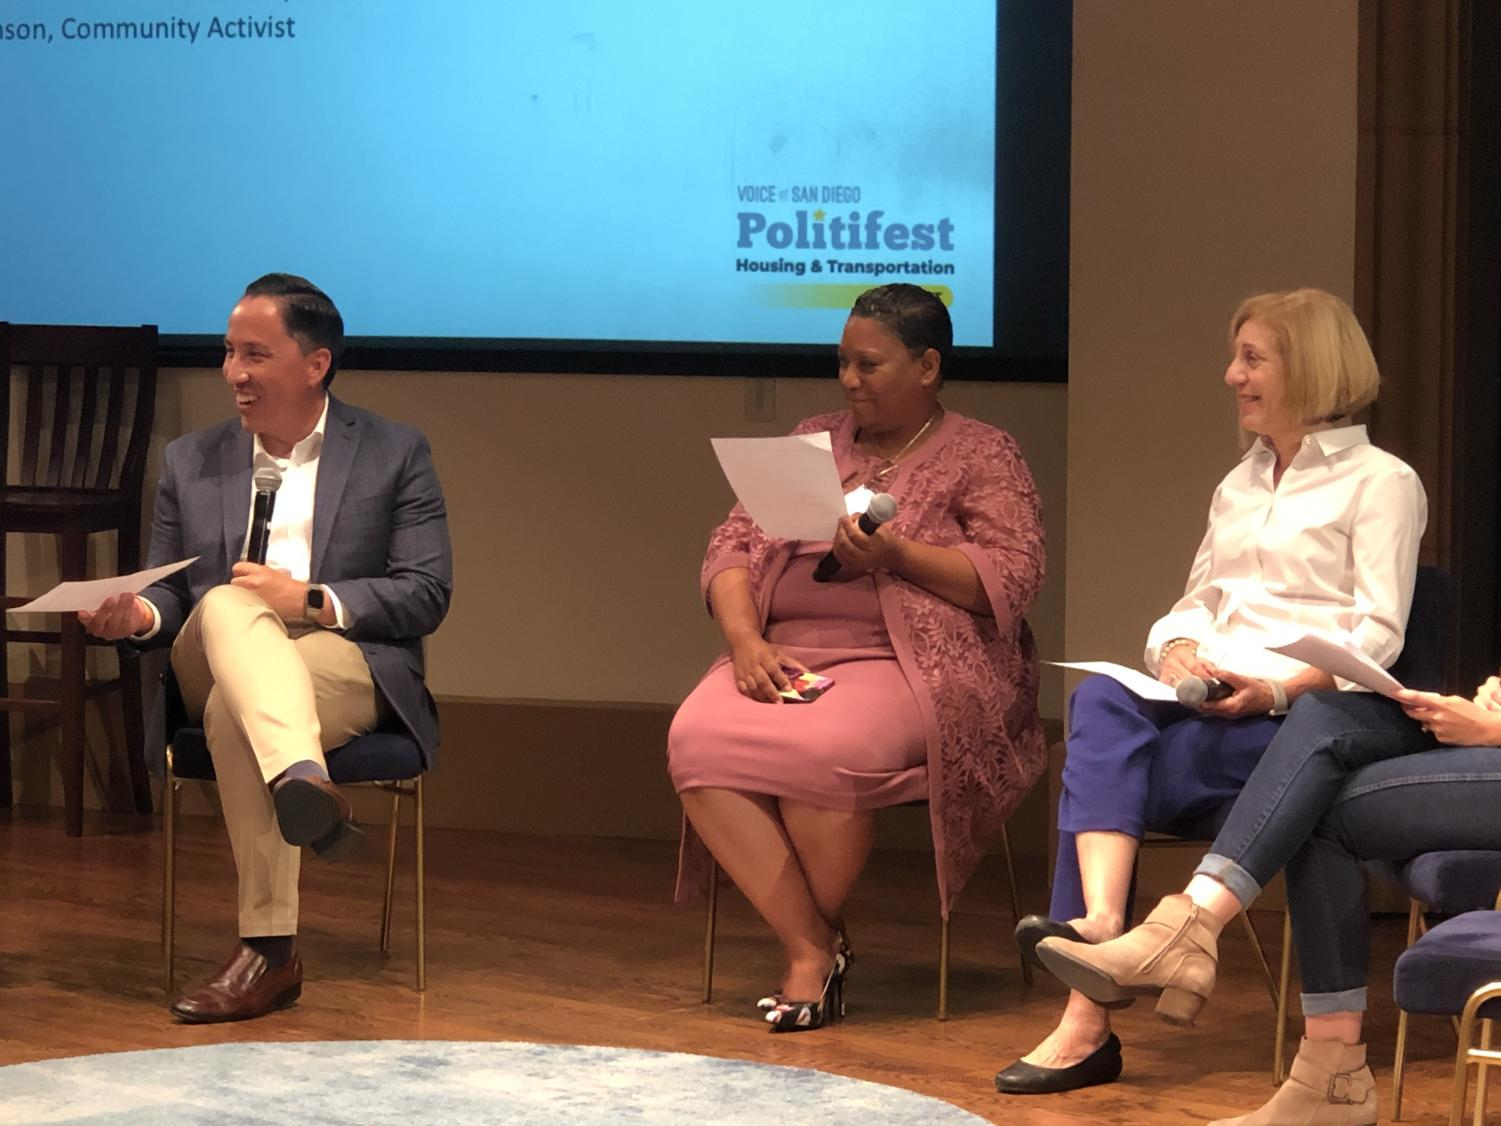 (Left to right) Todd Gloria, Tasha Williamson and Barbara Bry sit alongside one another during a mayoral debate hosted by Voice of San Diego on Oct. 26 at the University of San Diego.